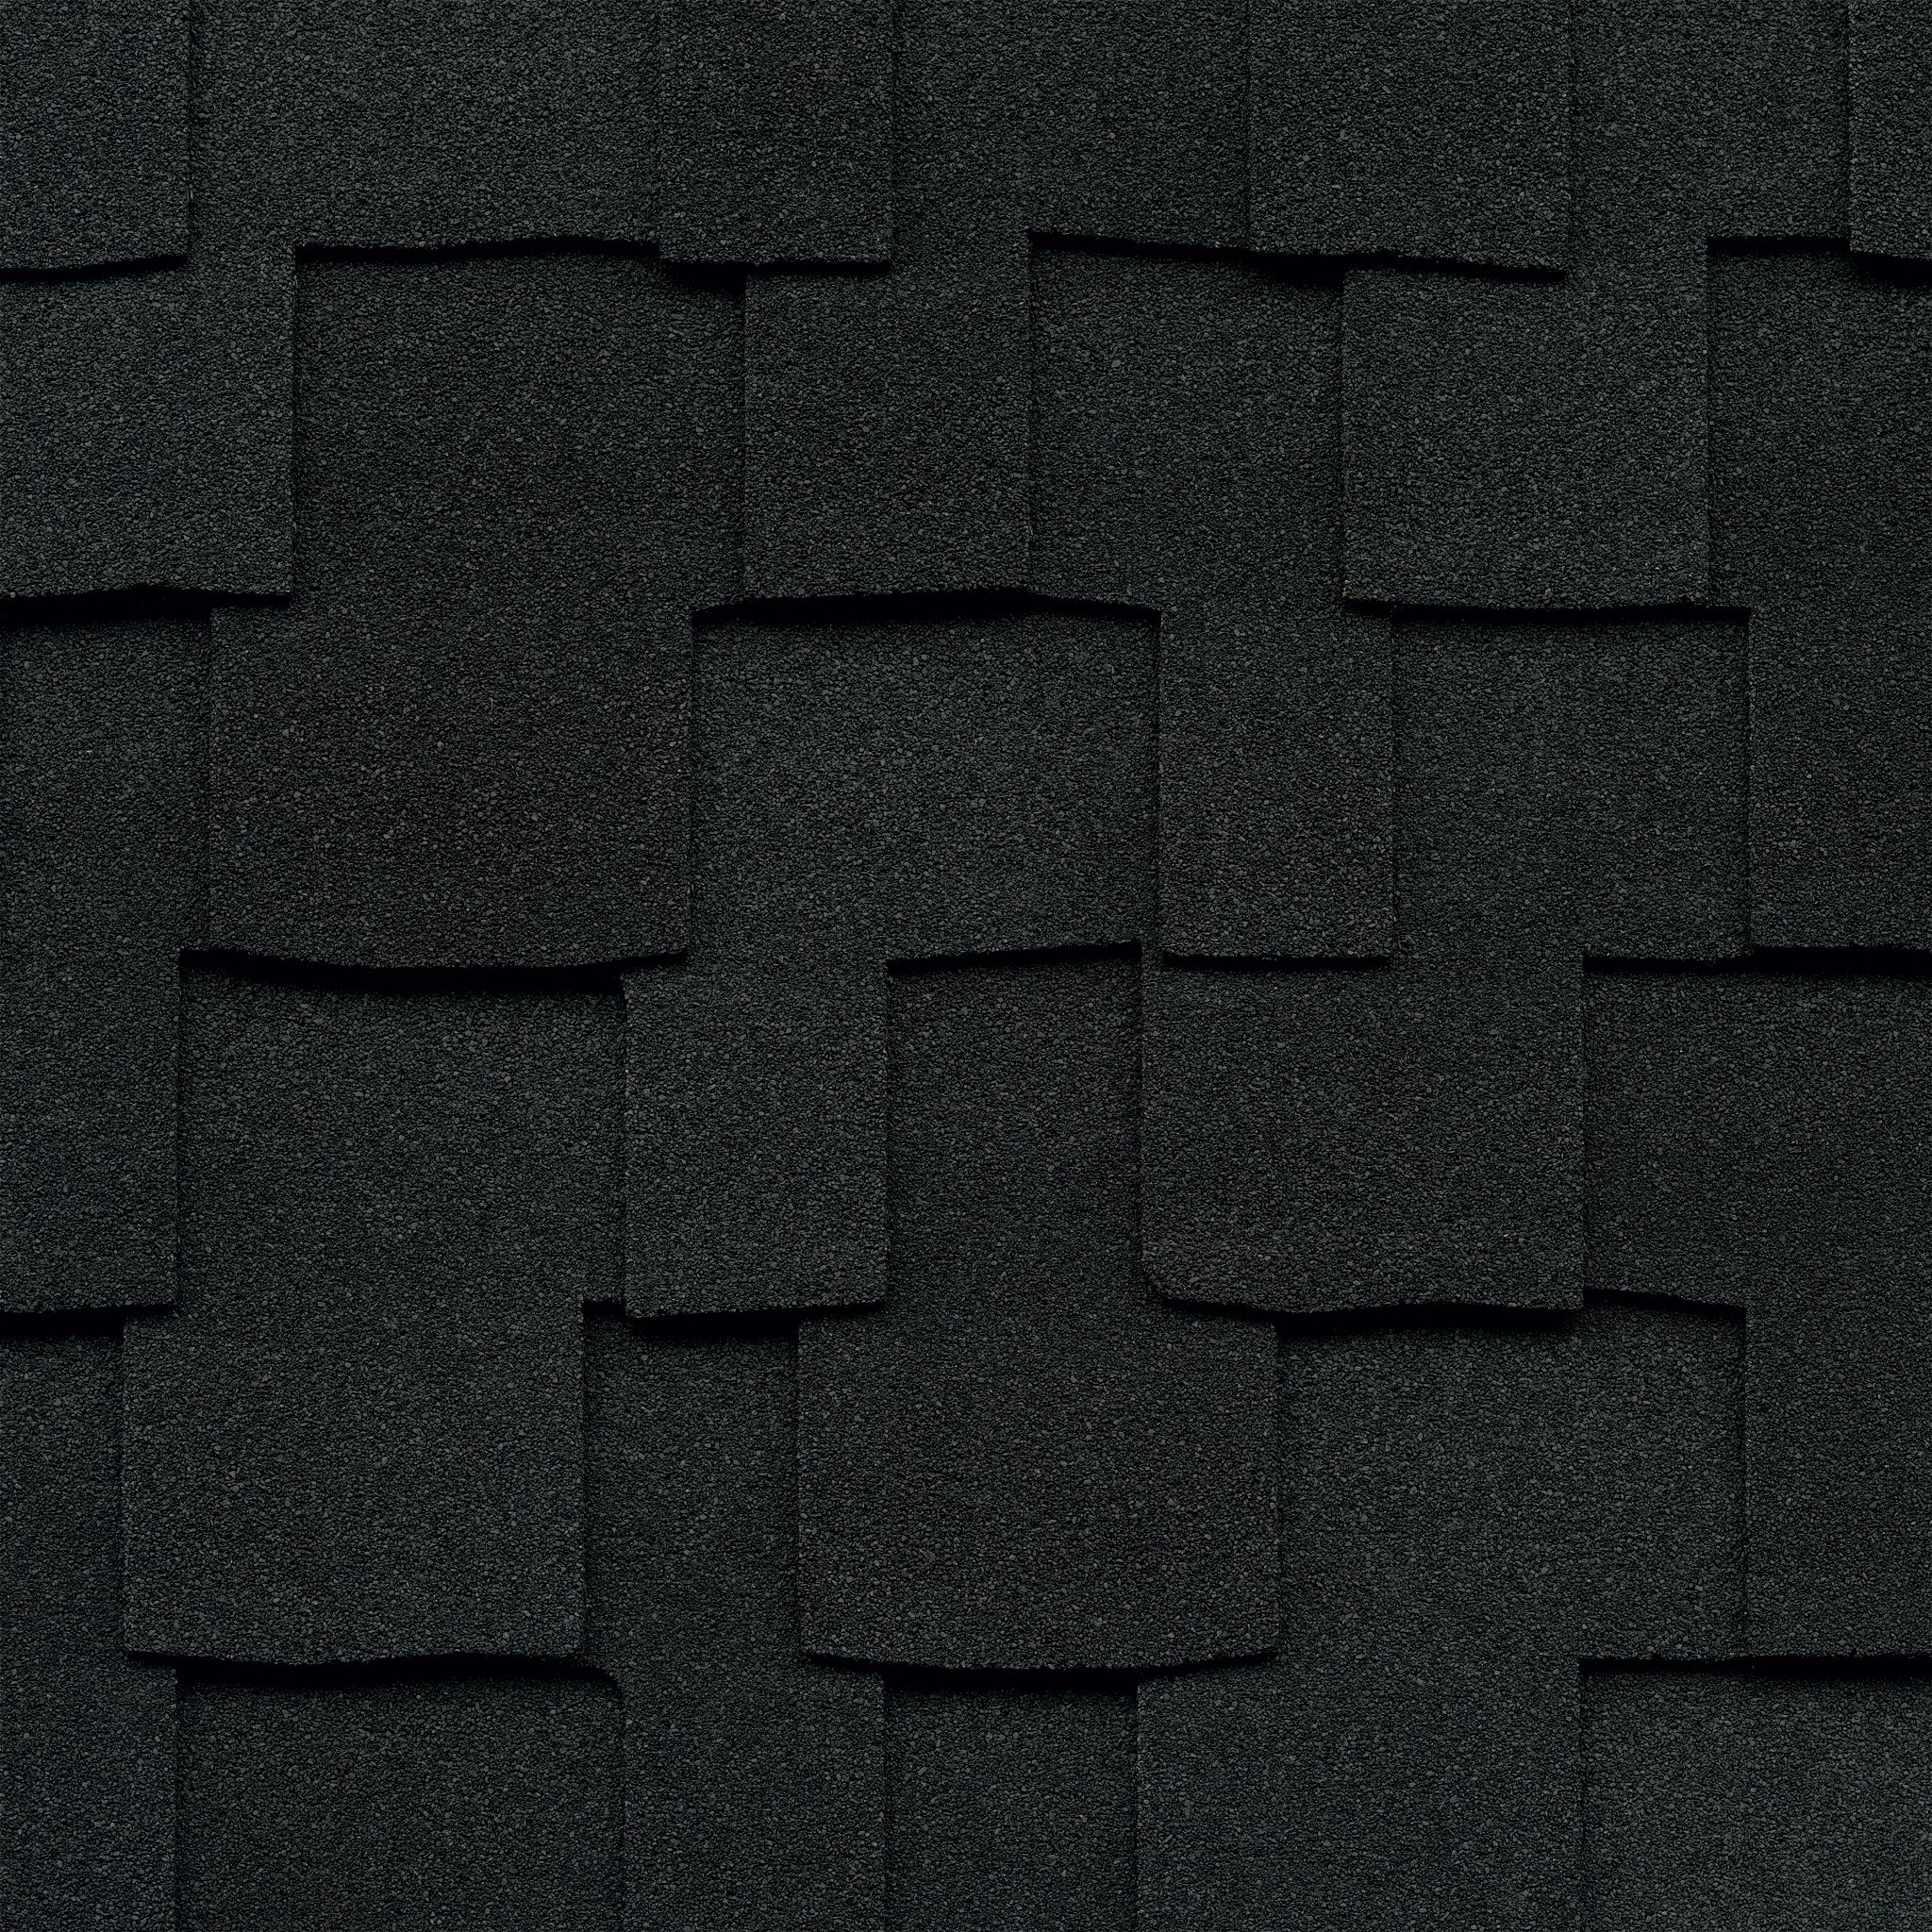 Close-up photo of GAF's Grand Sequoia Charcoal shingle swatch